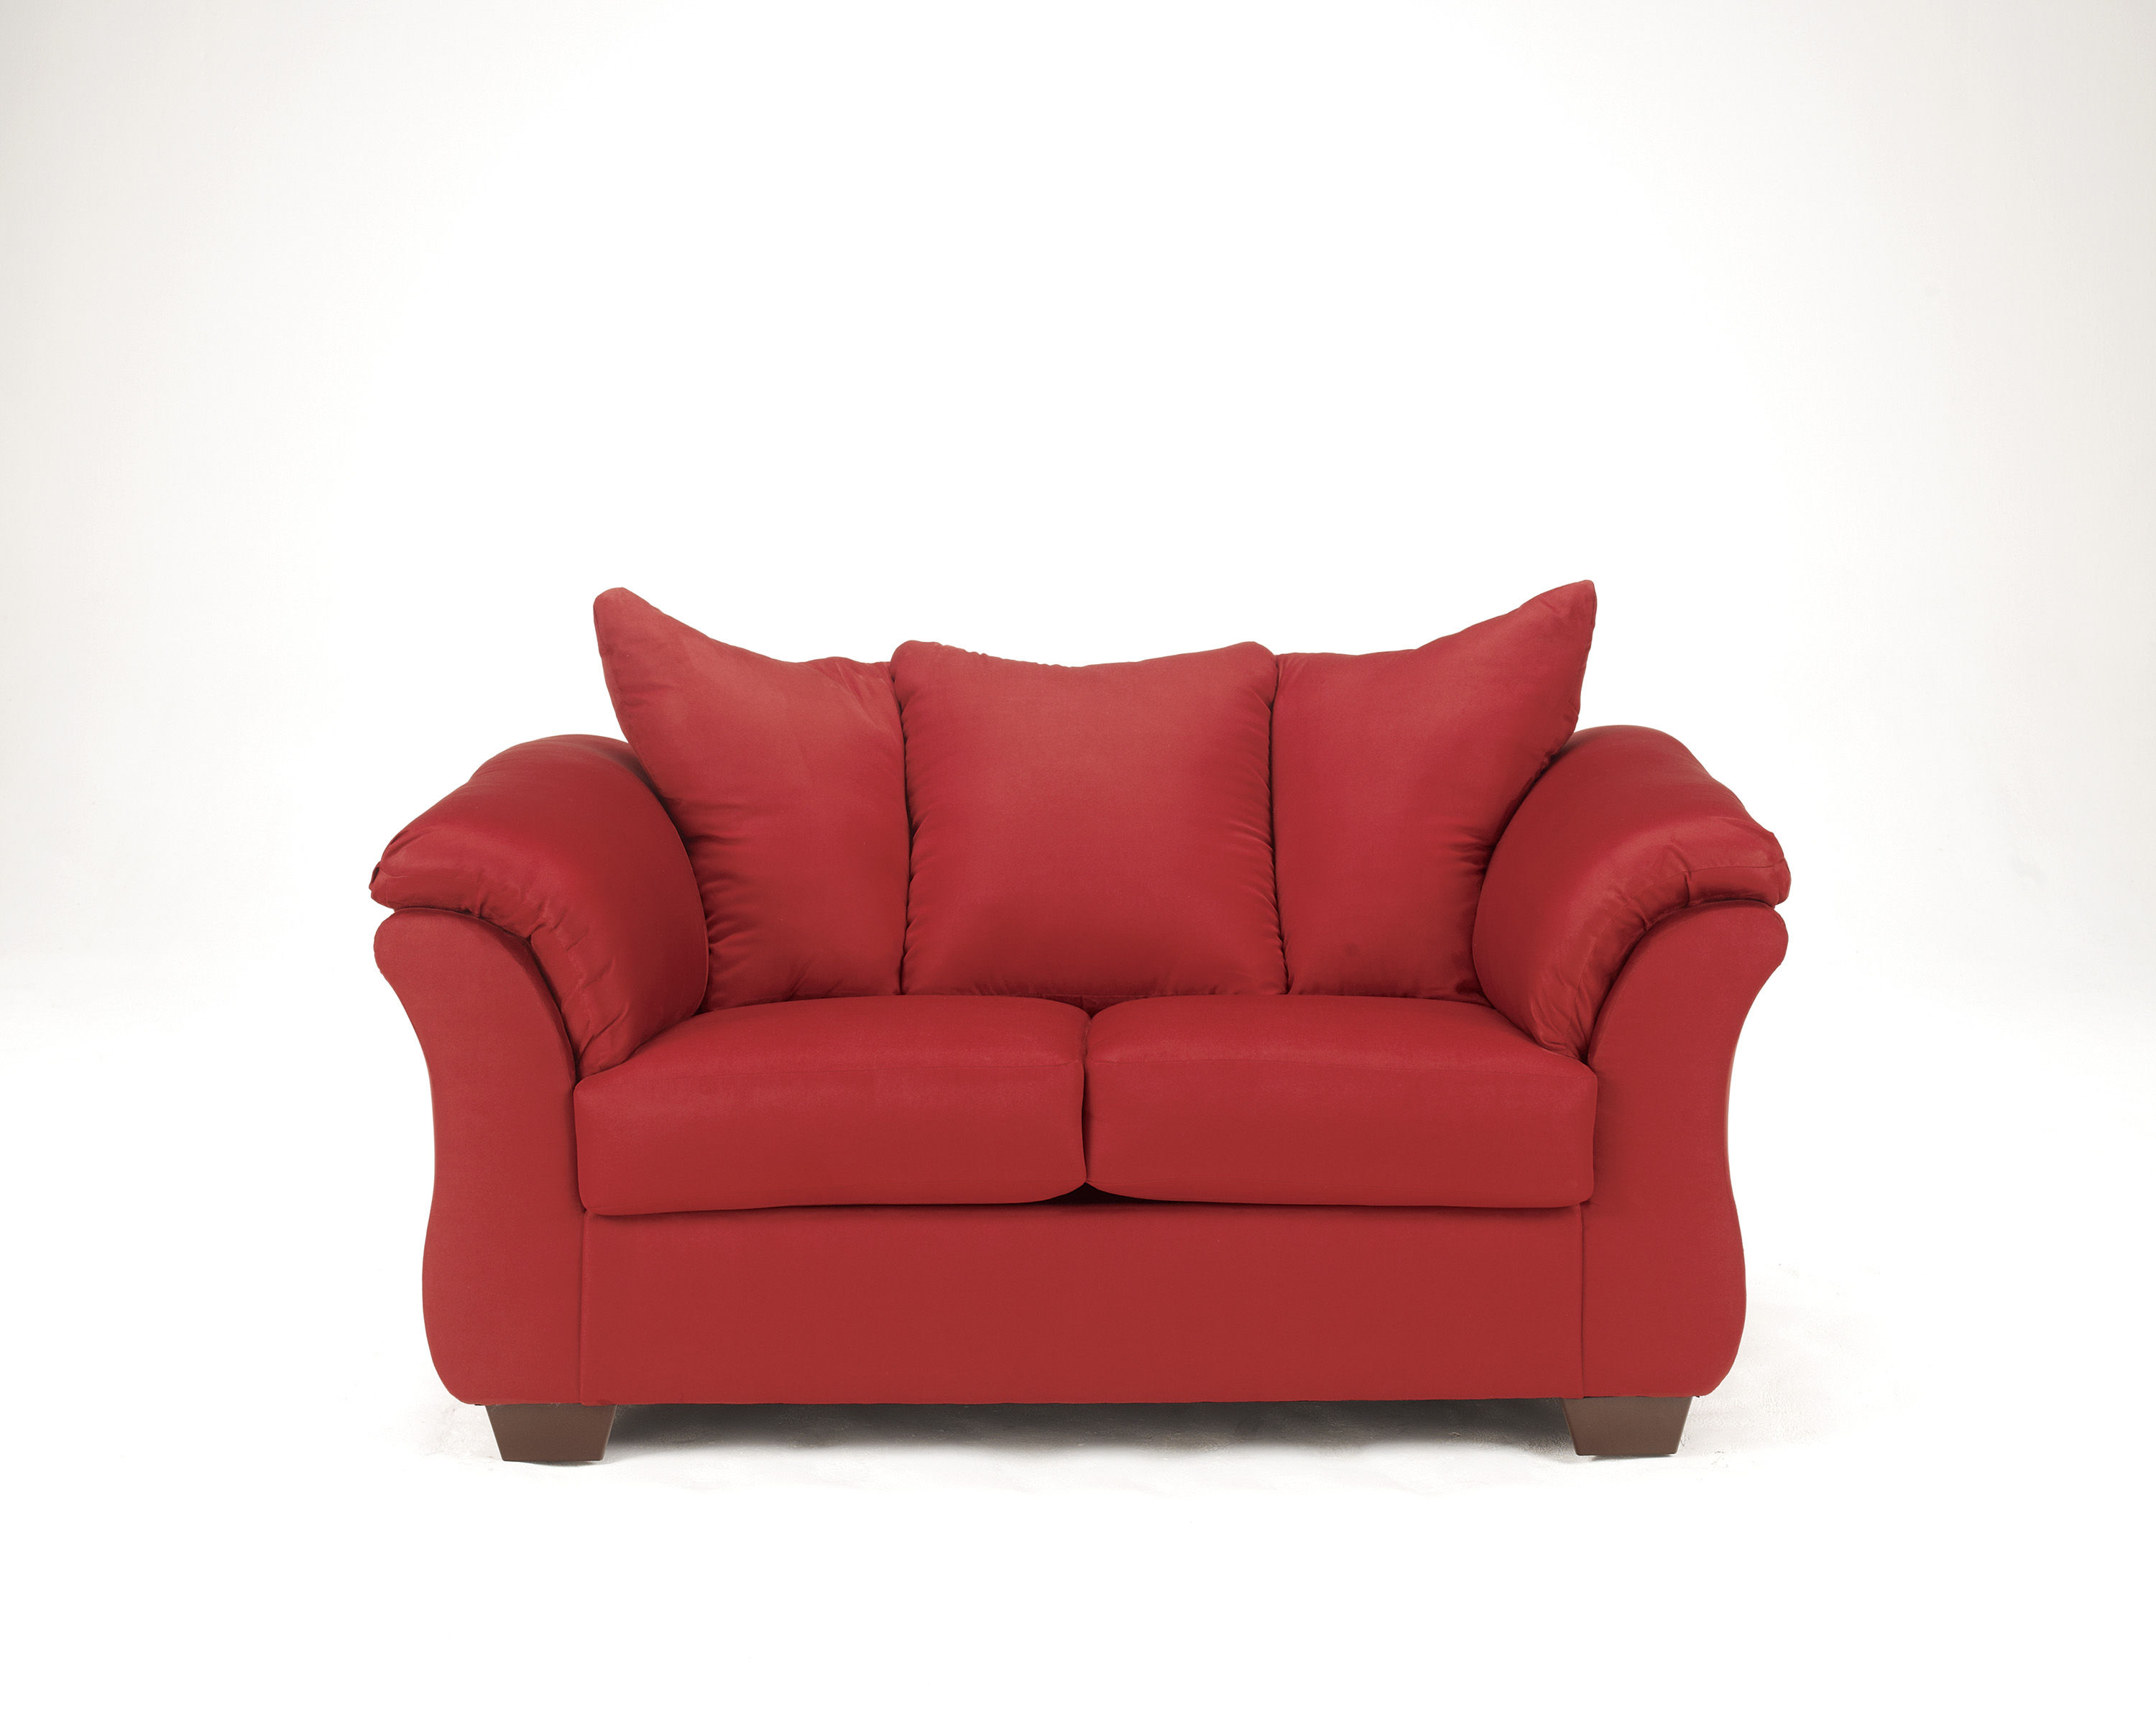 Ashley Furniture Darcy Salsa Loveseat The Classy Home